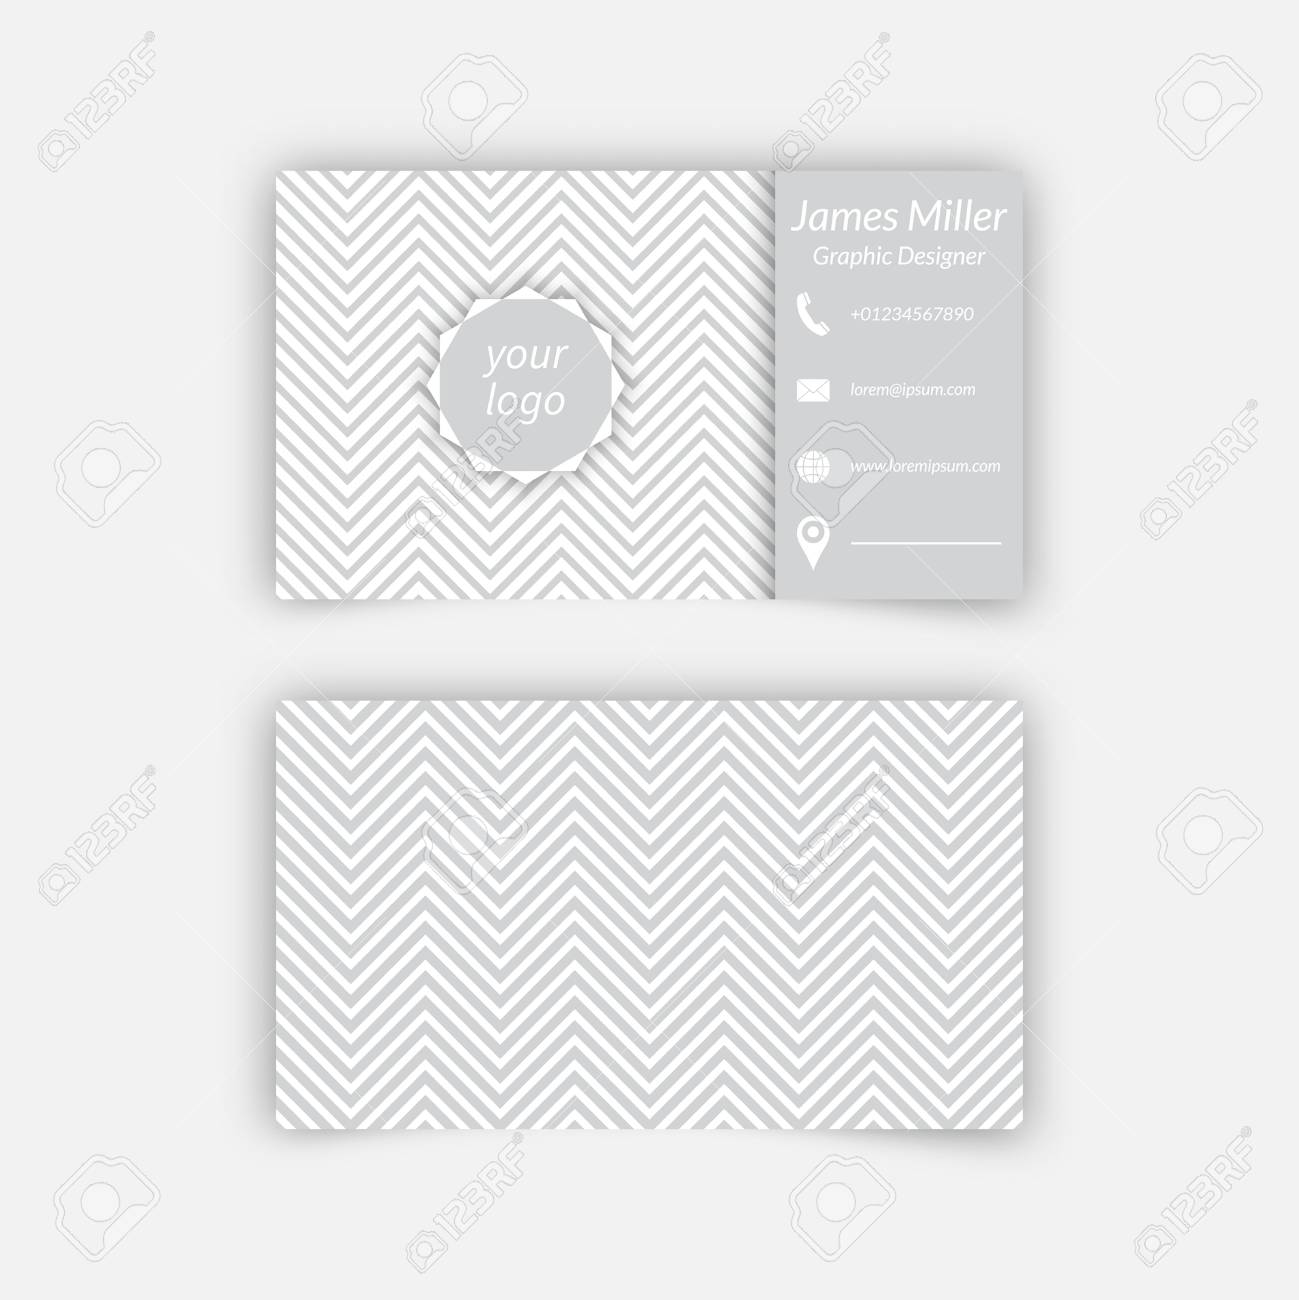 Business Card Blank Template With Textured Background From Zigzag ...